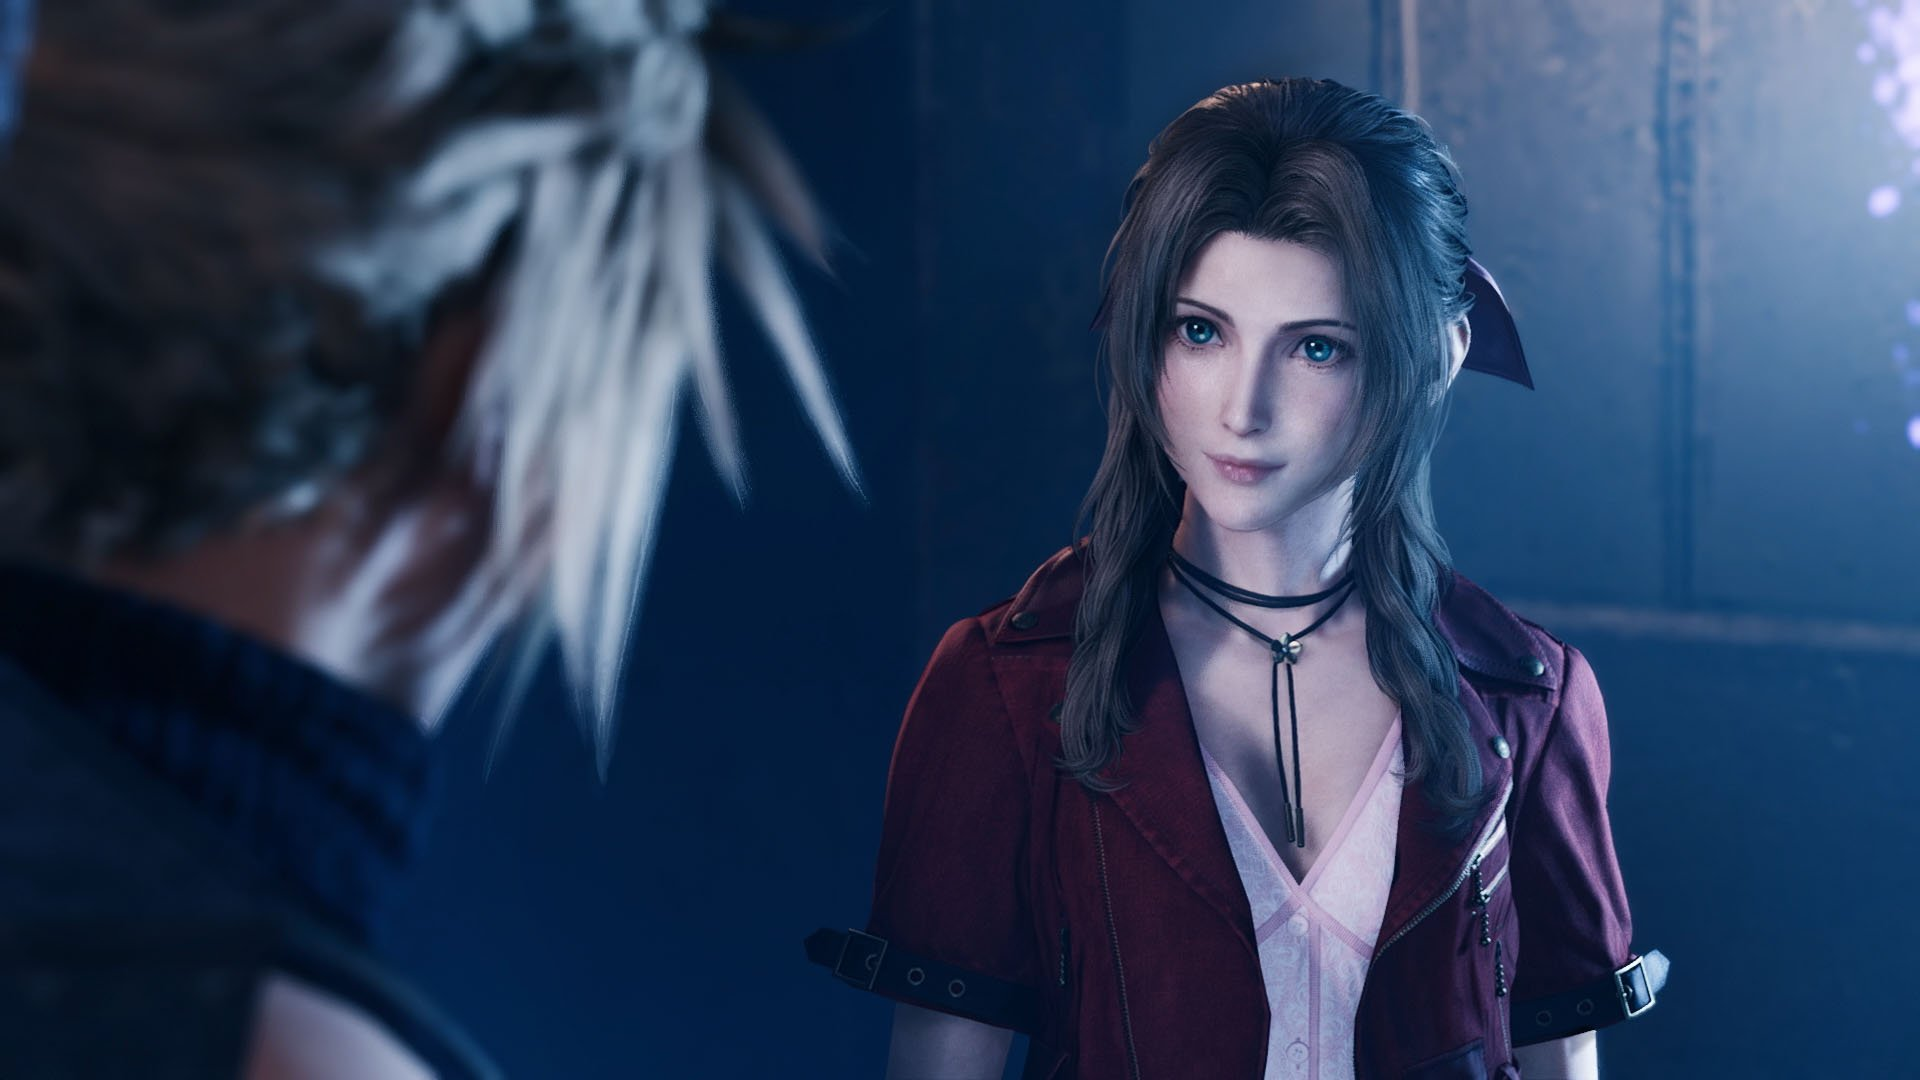 ff7 remake controls and keybindings feature